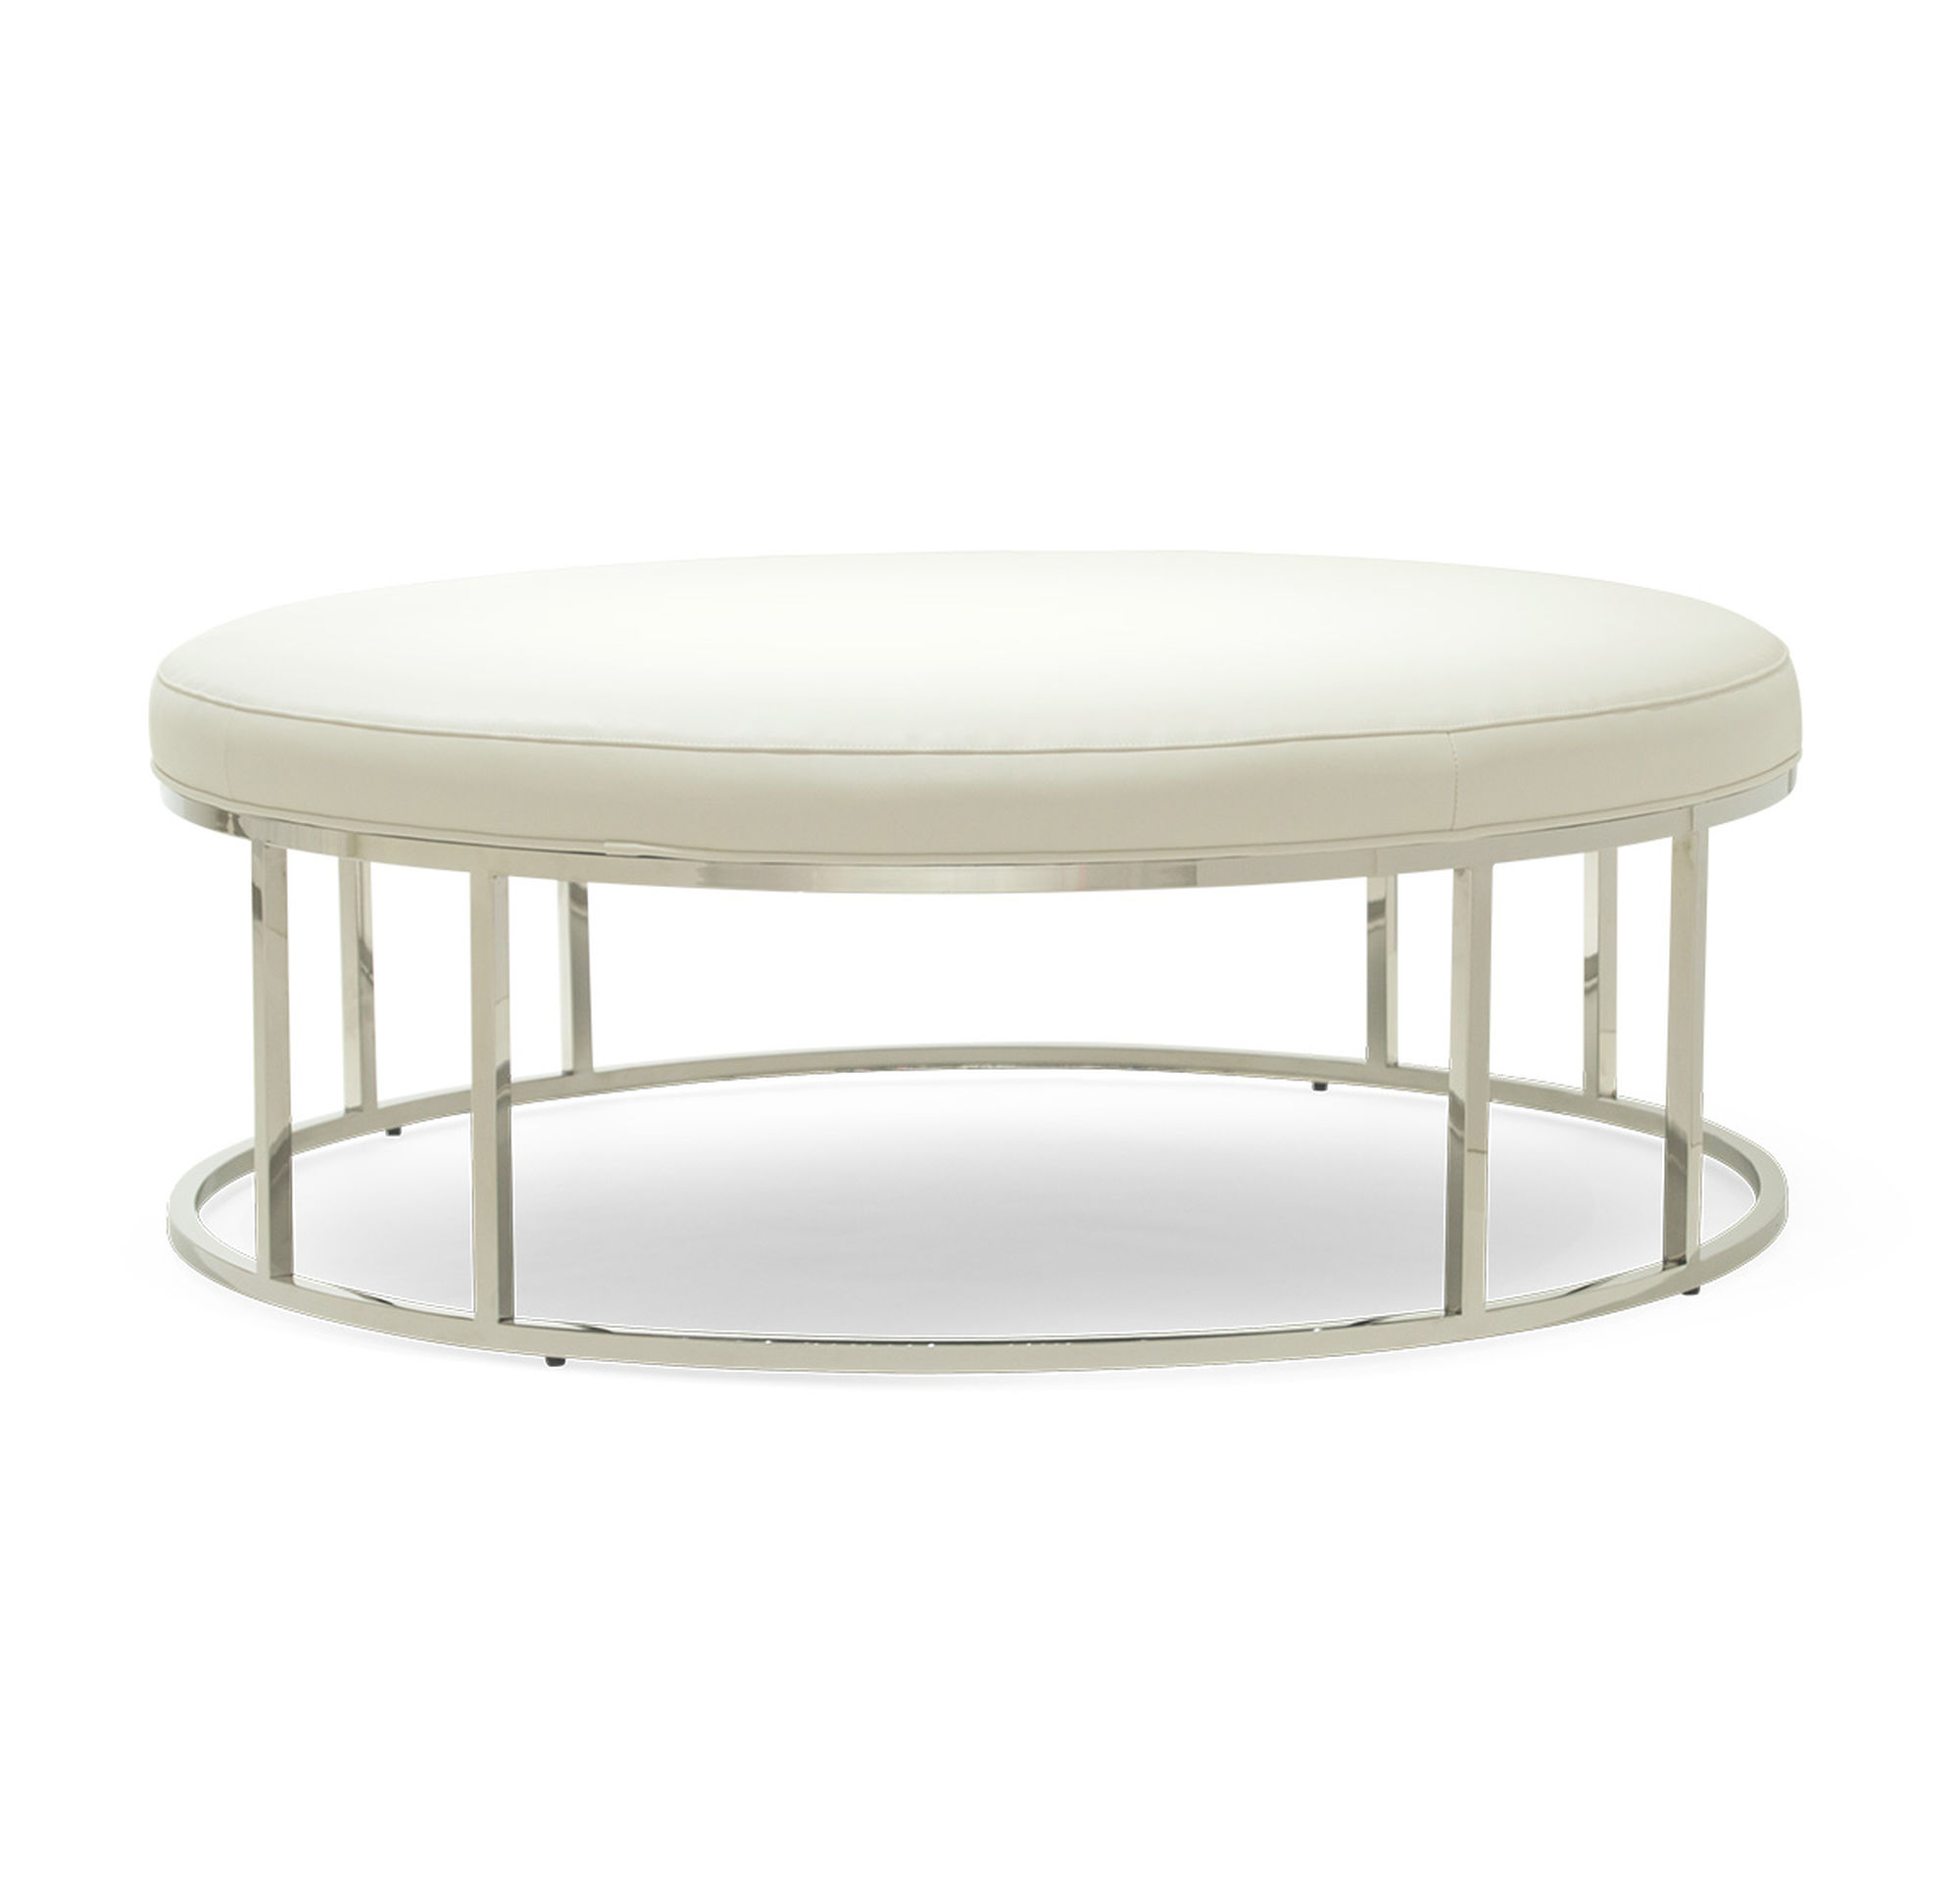 carmen round ott pss metal accent table small drop leaf pier one seat cushions vanity mirrored side tables for bedroom oval patio indoor nautical wall sconces lighting antique